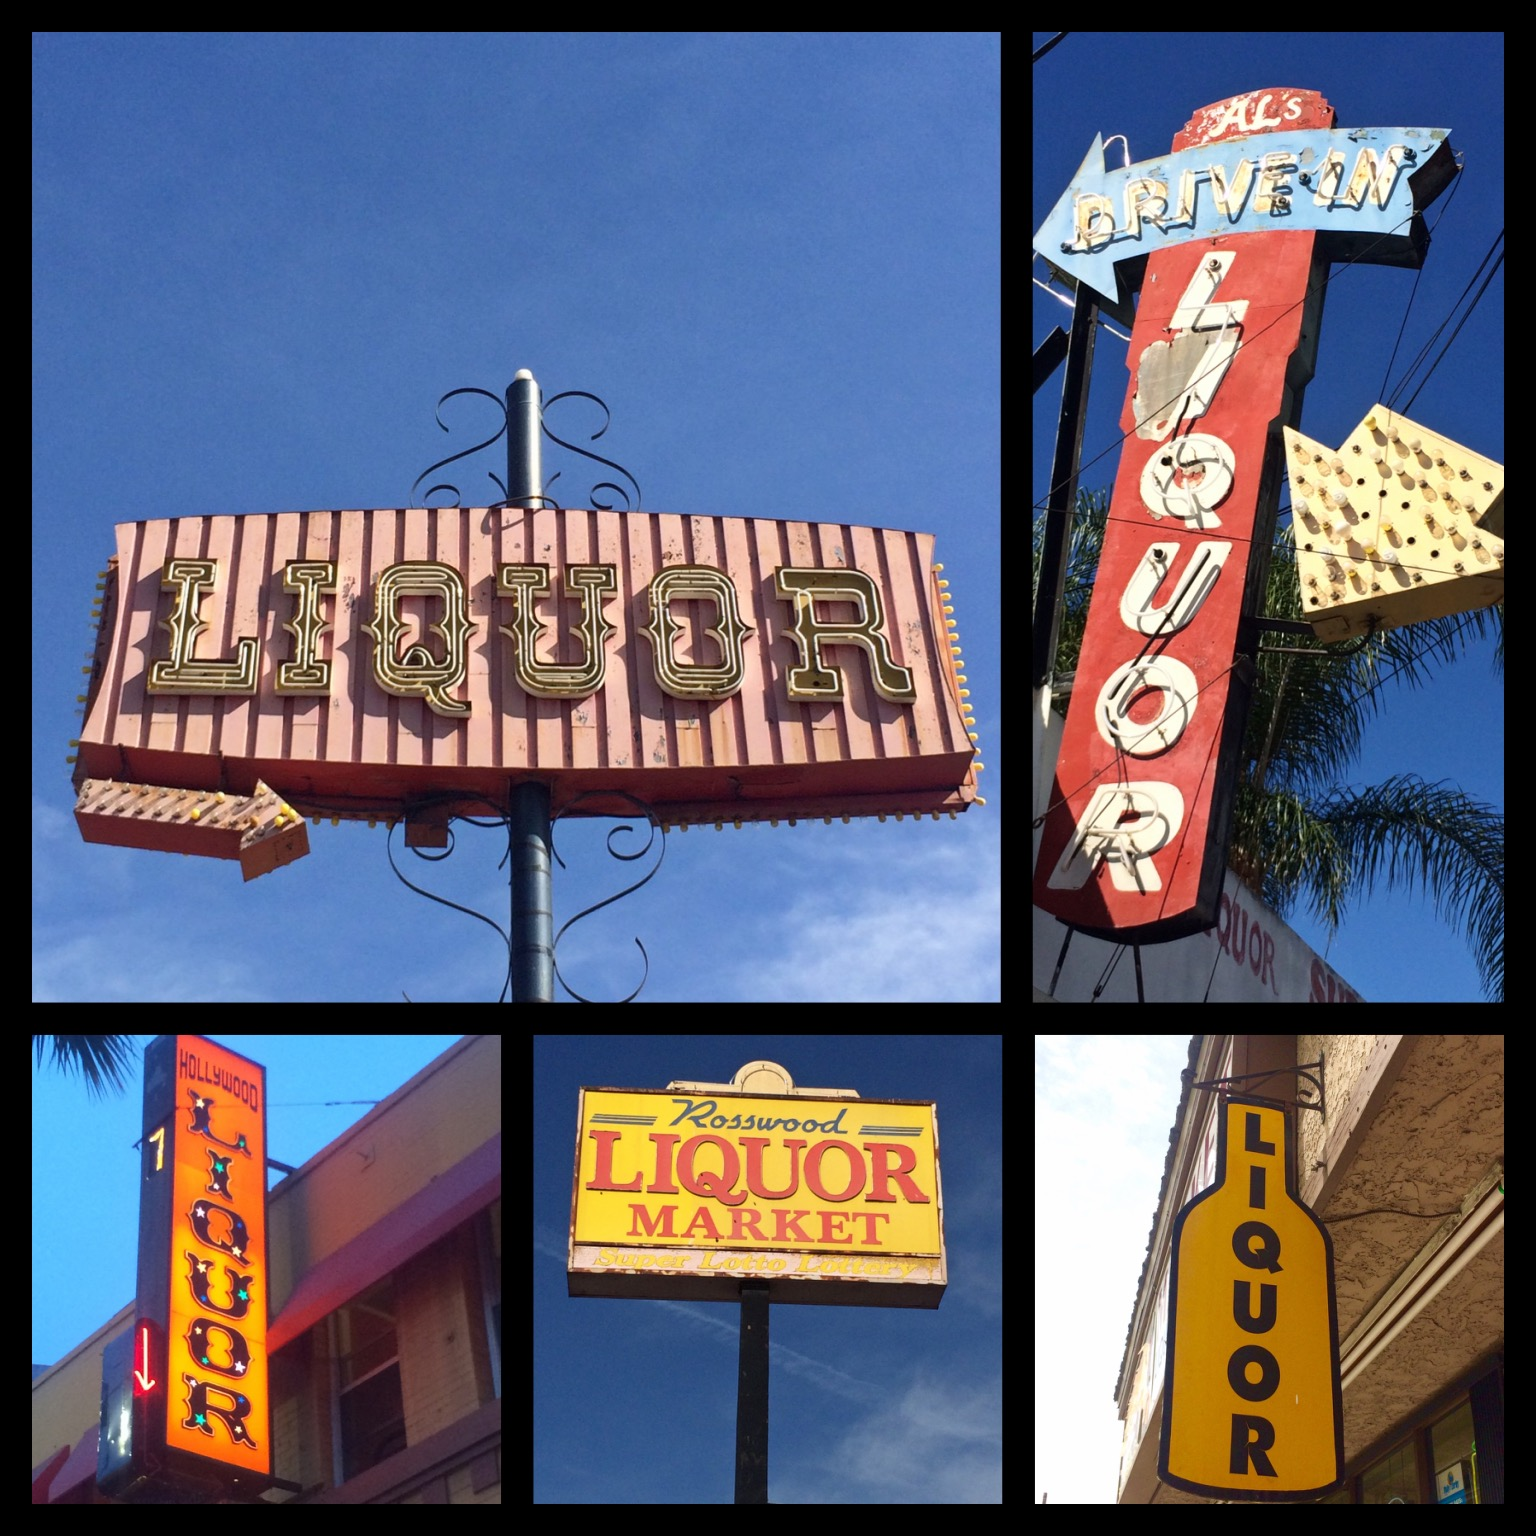 Continental Liquor, built in 1963, on Balboa Blvd in Northridge; Al's Drive-in Liquor, built 1951 on Saticoy Street in Reseda; Hollywood Liquors on Hollywood Blvd in Hollywood; Rosswood Liquor on Roscoe Blvd in Panorama City; Antidote Liquor on Vanowen Street in Van Nuys